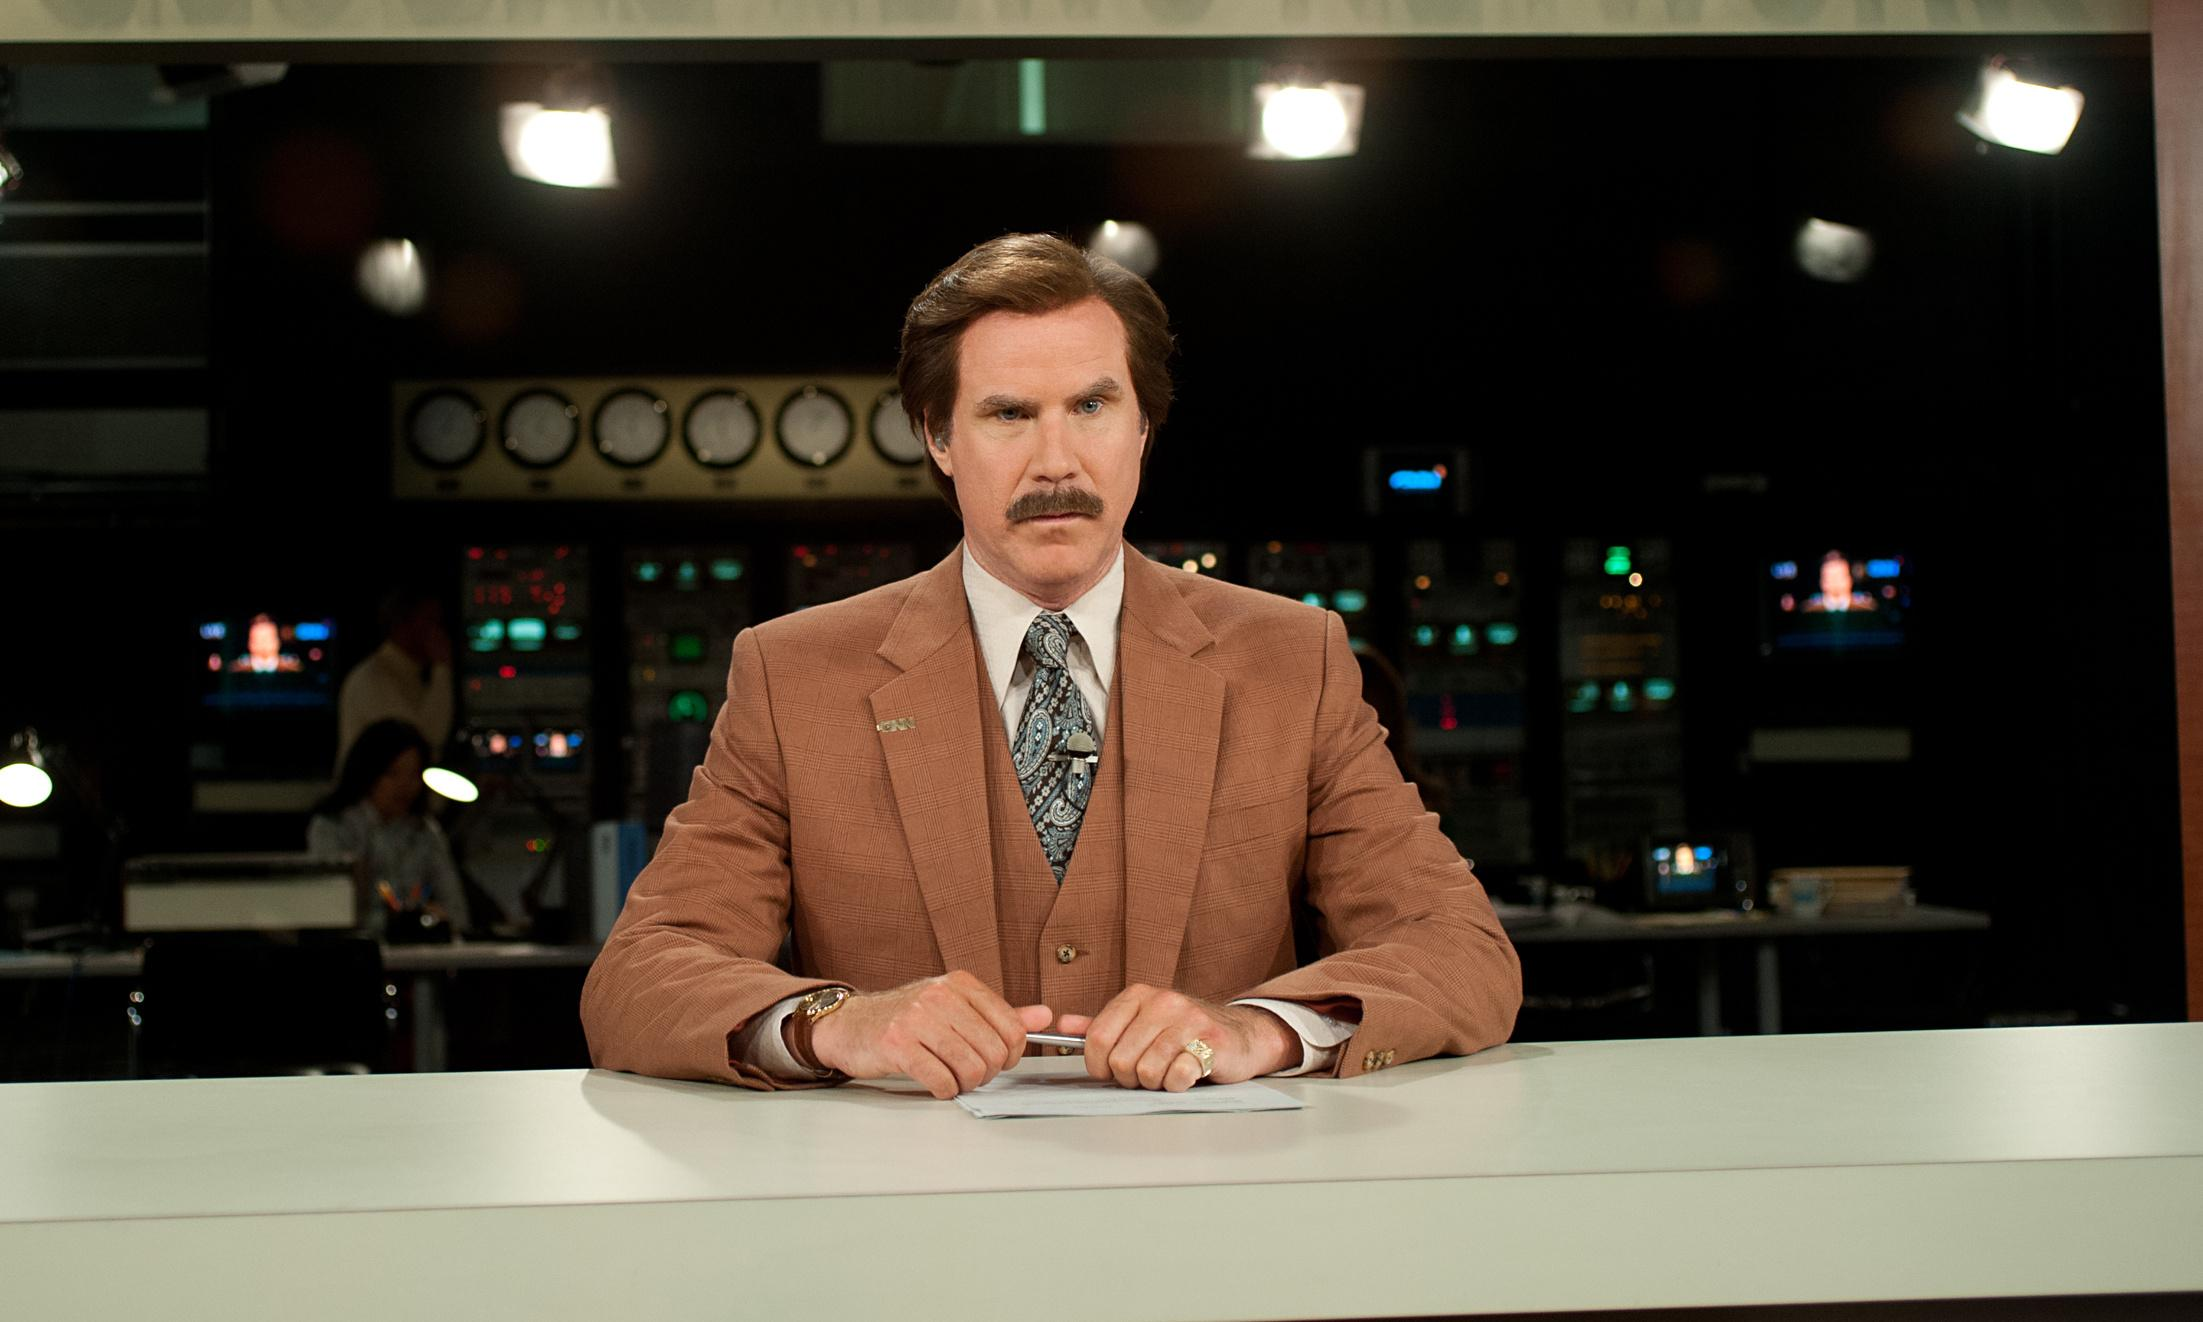 Ron Burgundy brings his classy touch to true crime – podcasts of the week